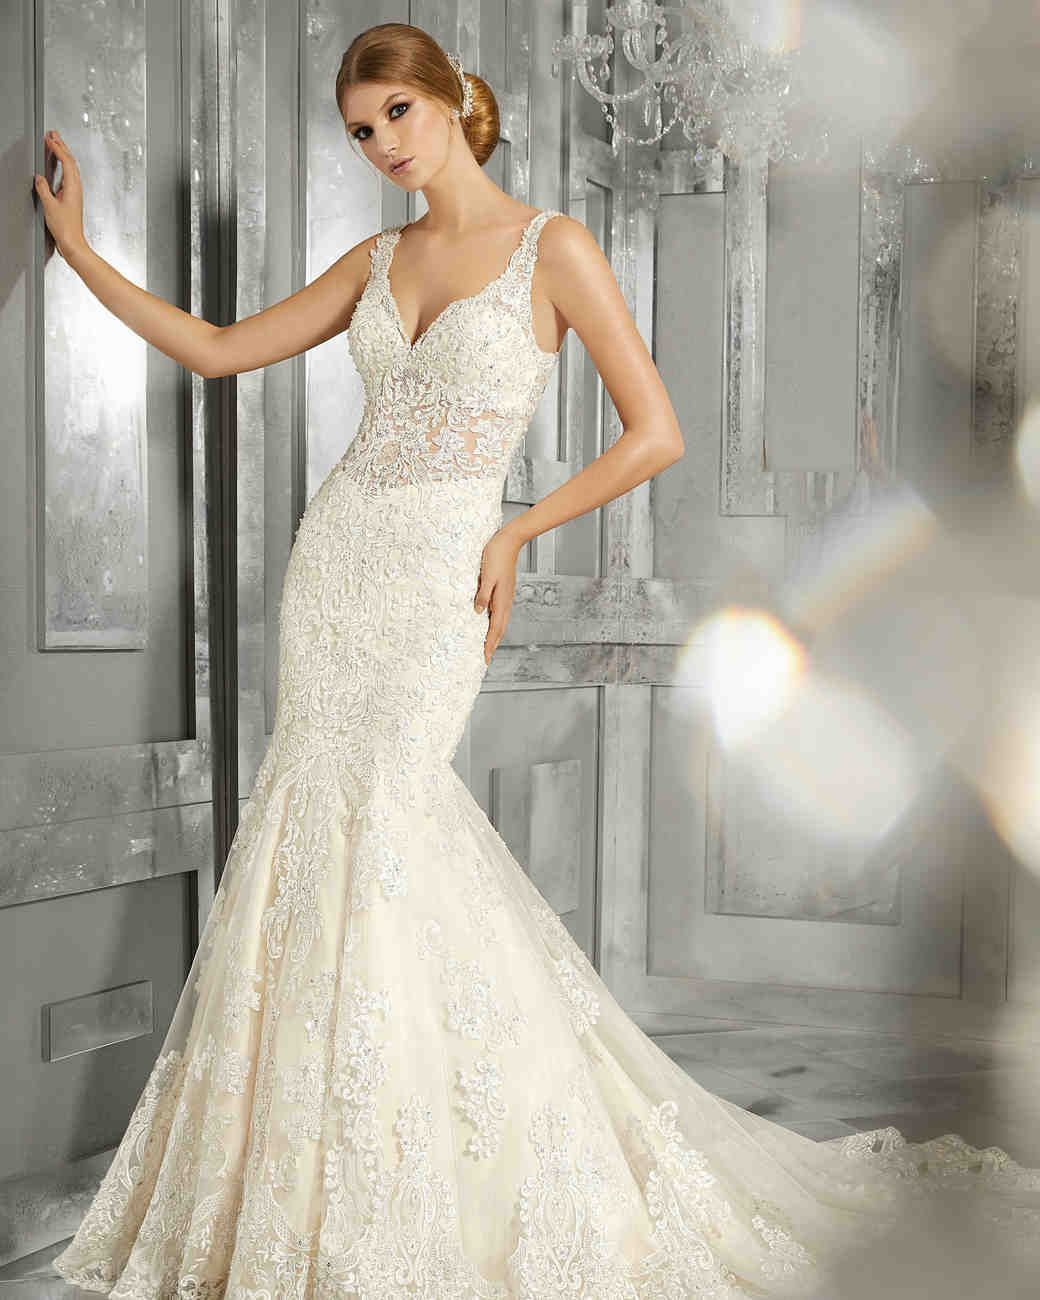 Morilee wedding dress spring vneck embellished trumpet